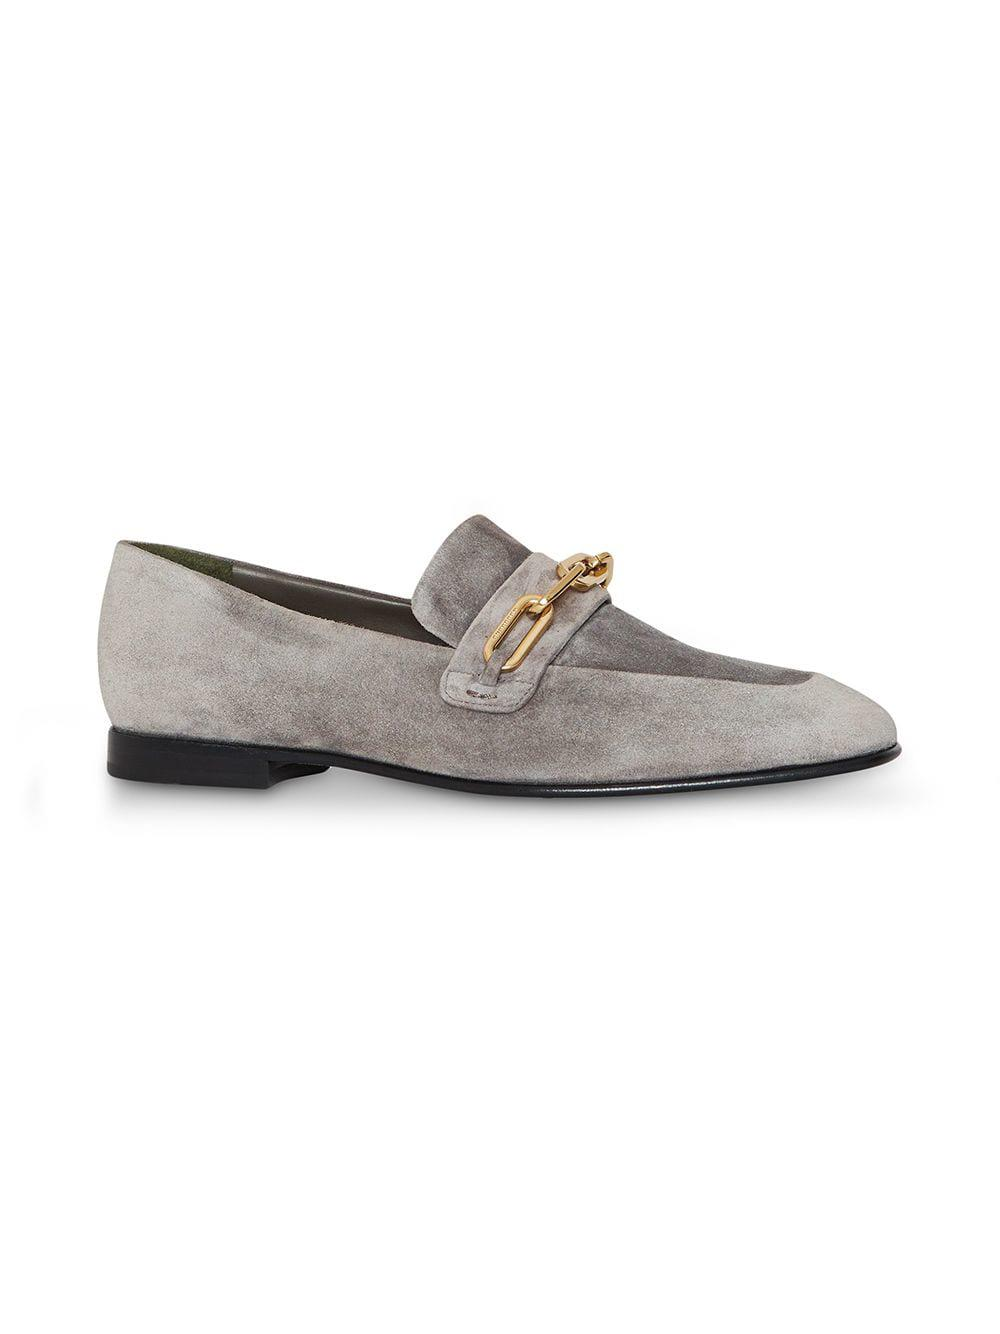 23784584a66 Lyst - Burberry Link Detail Suede Loafers in Gray